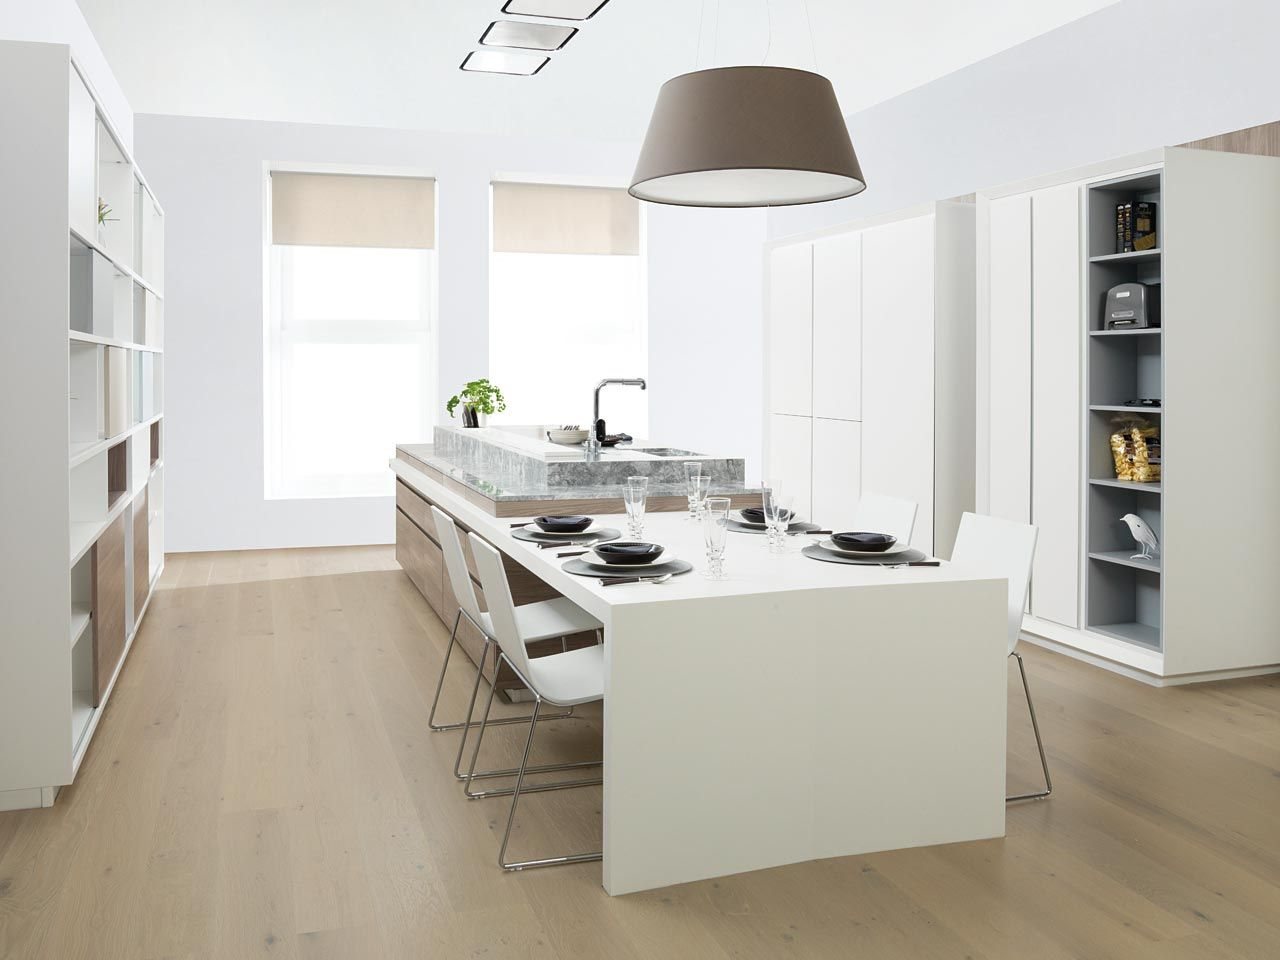 Highly Organized Contemporary Kitchen Designs Bending To The Needs